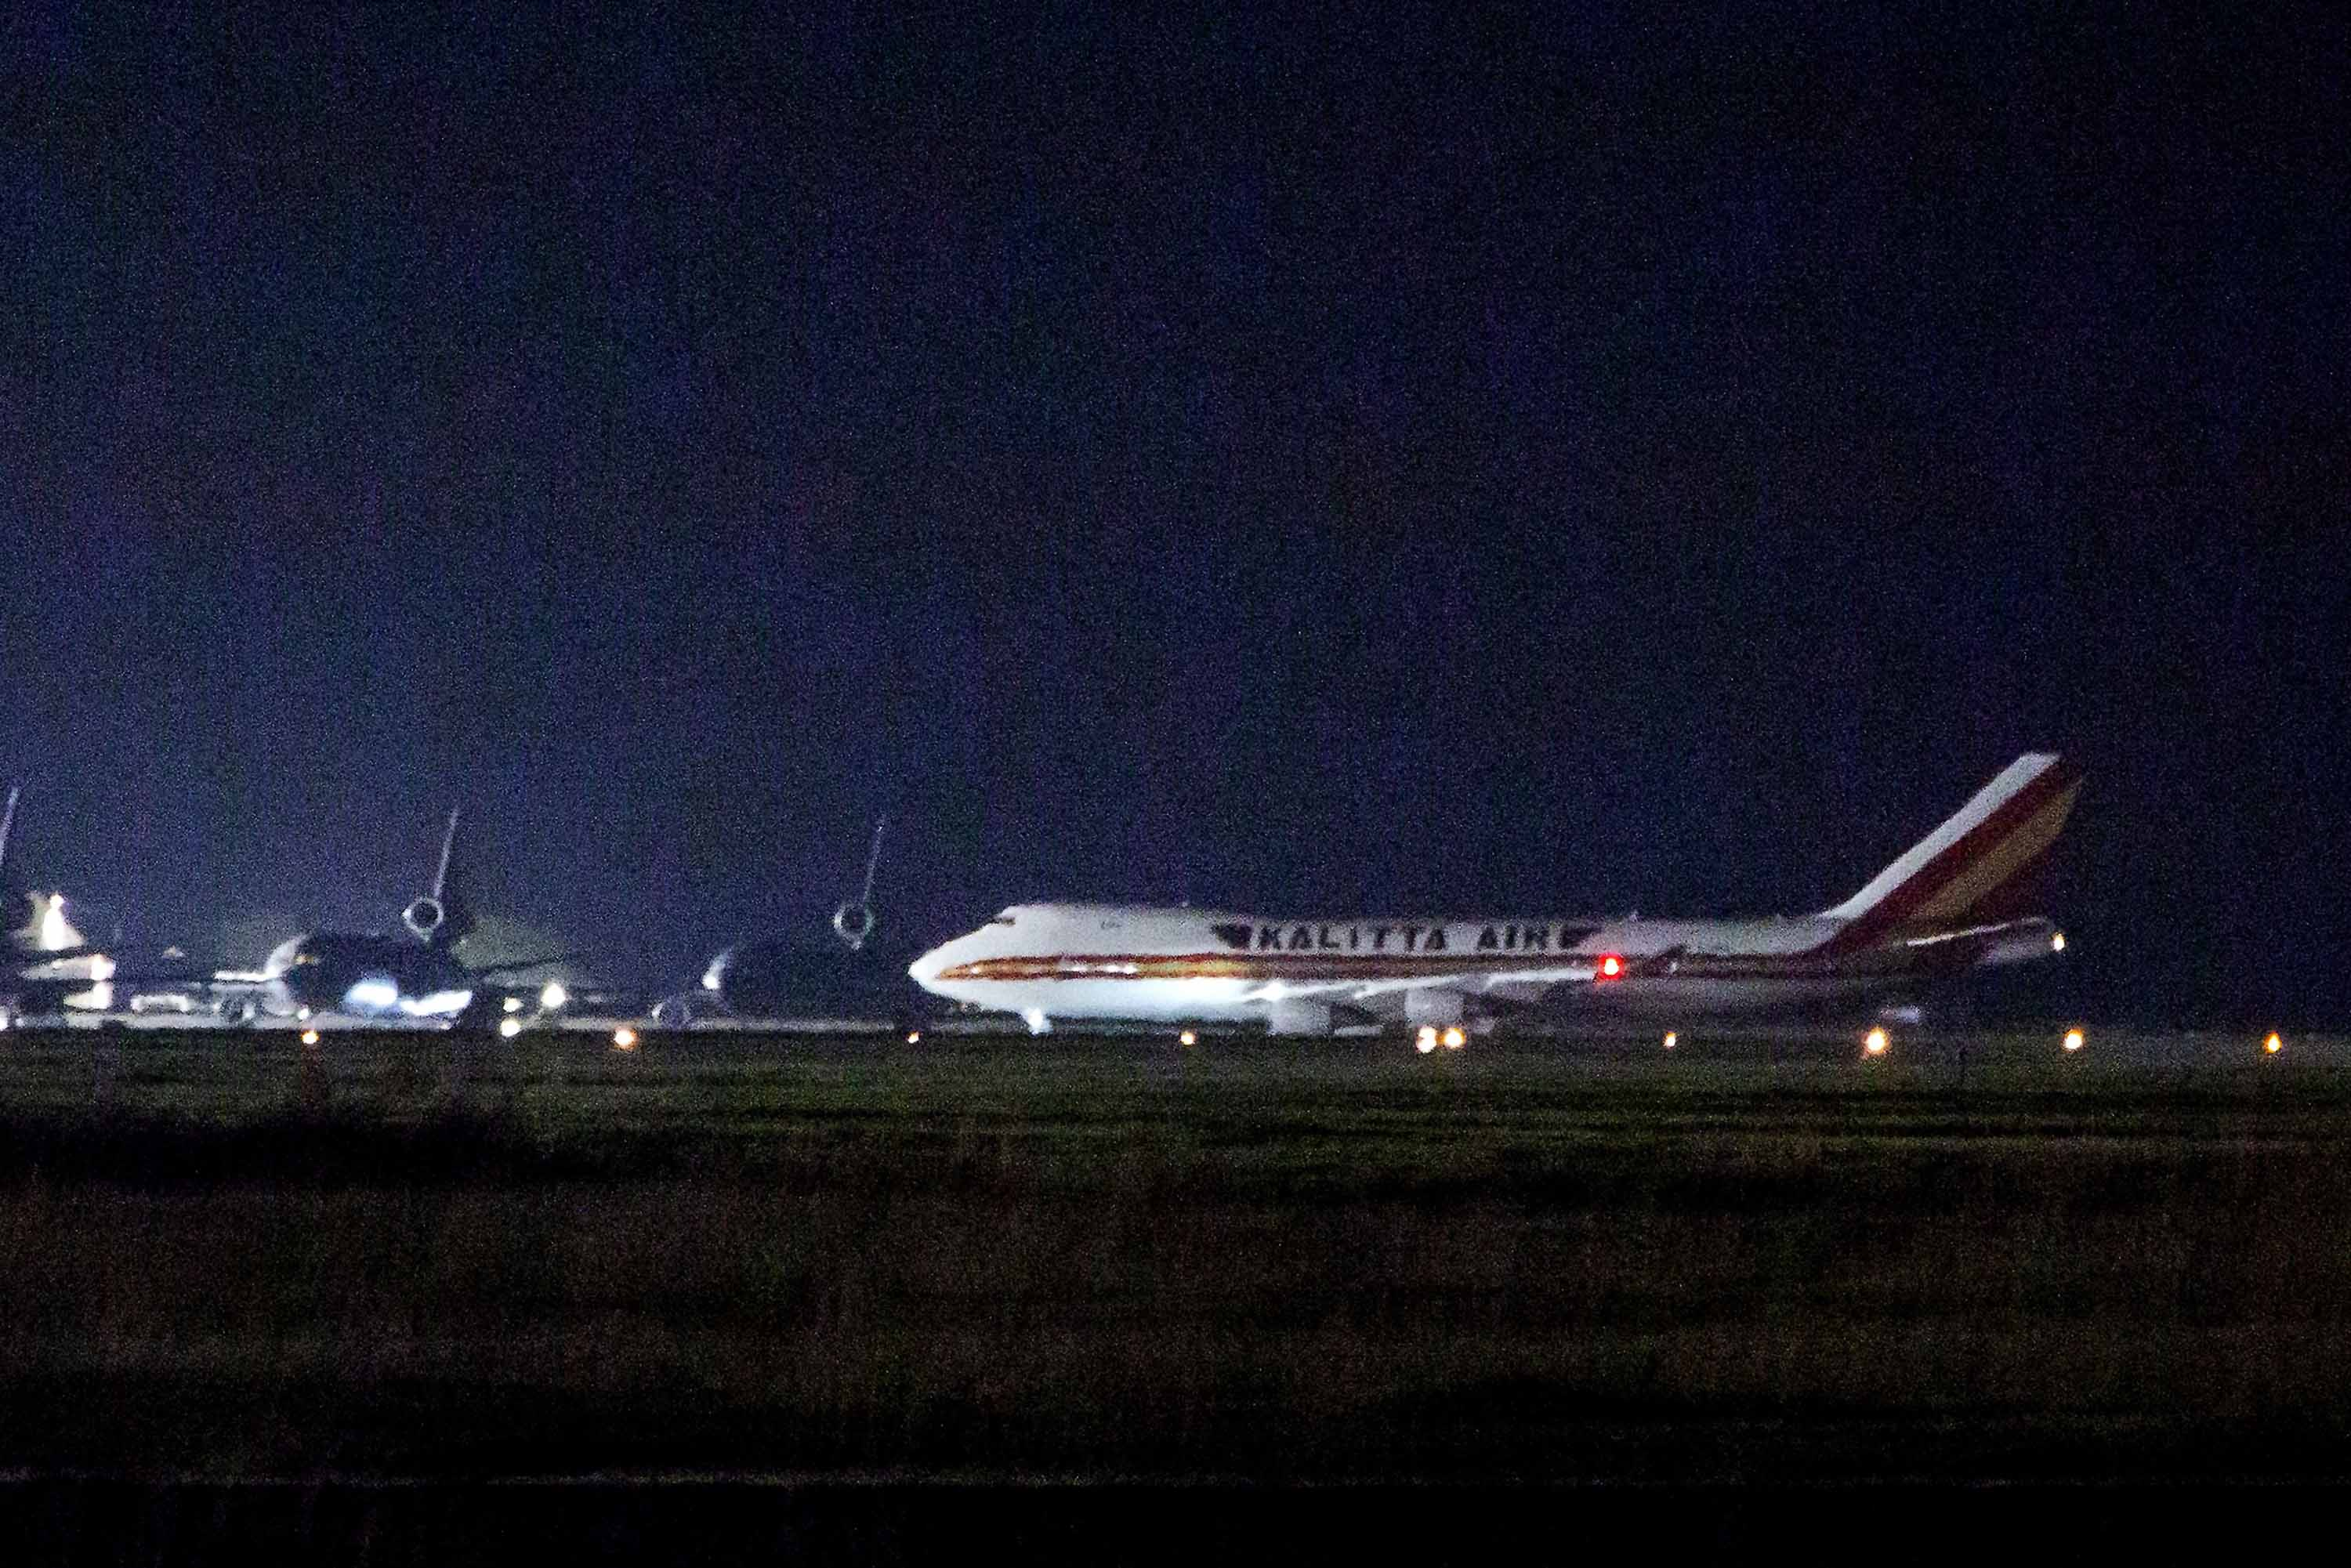 A plane carrying American passengers, who were released from quarantine aboard the Diamond Princess cruise ship in Japan, arrives at Travis Air Force Base in California on February 16.